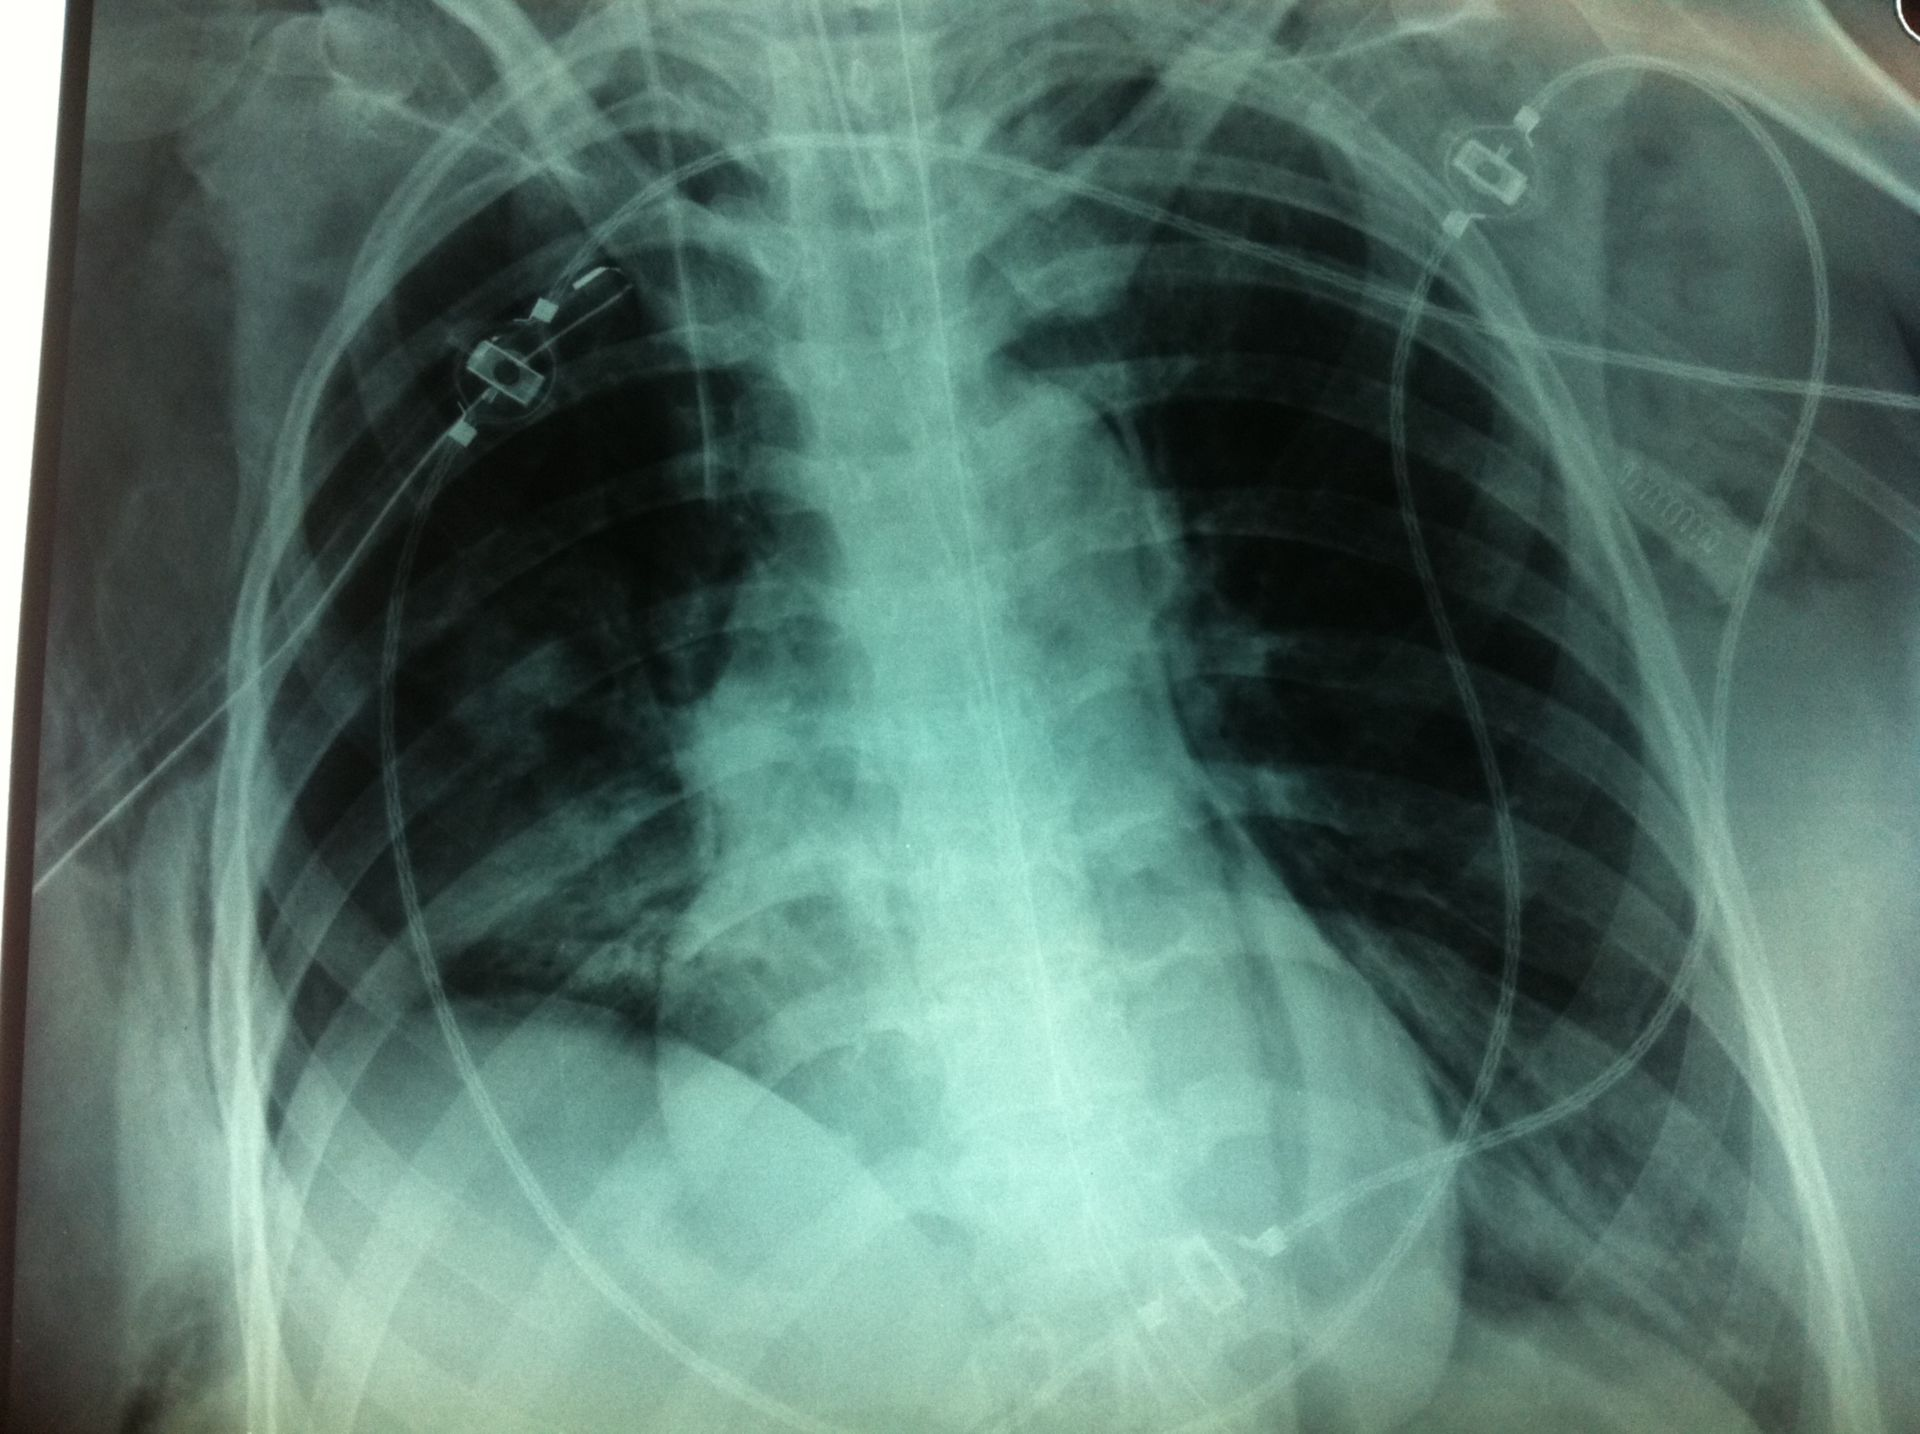 Tension pneumothorax after relief